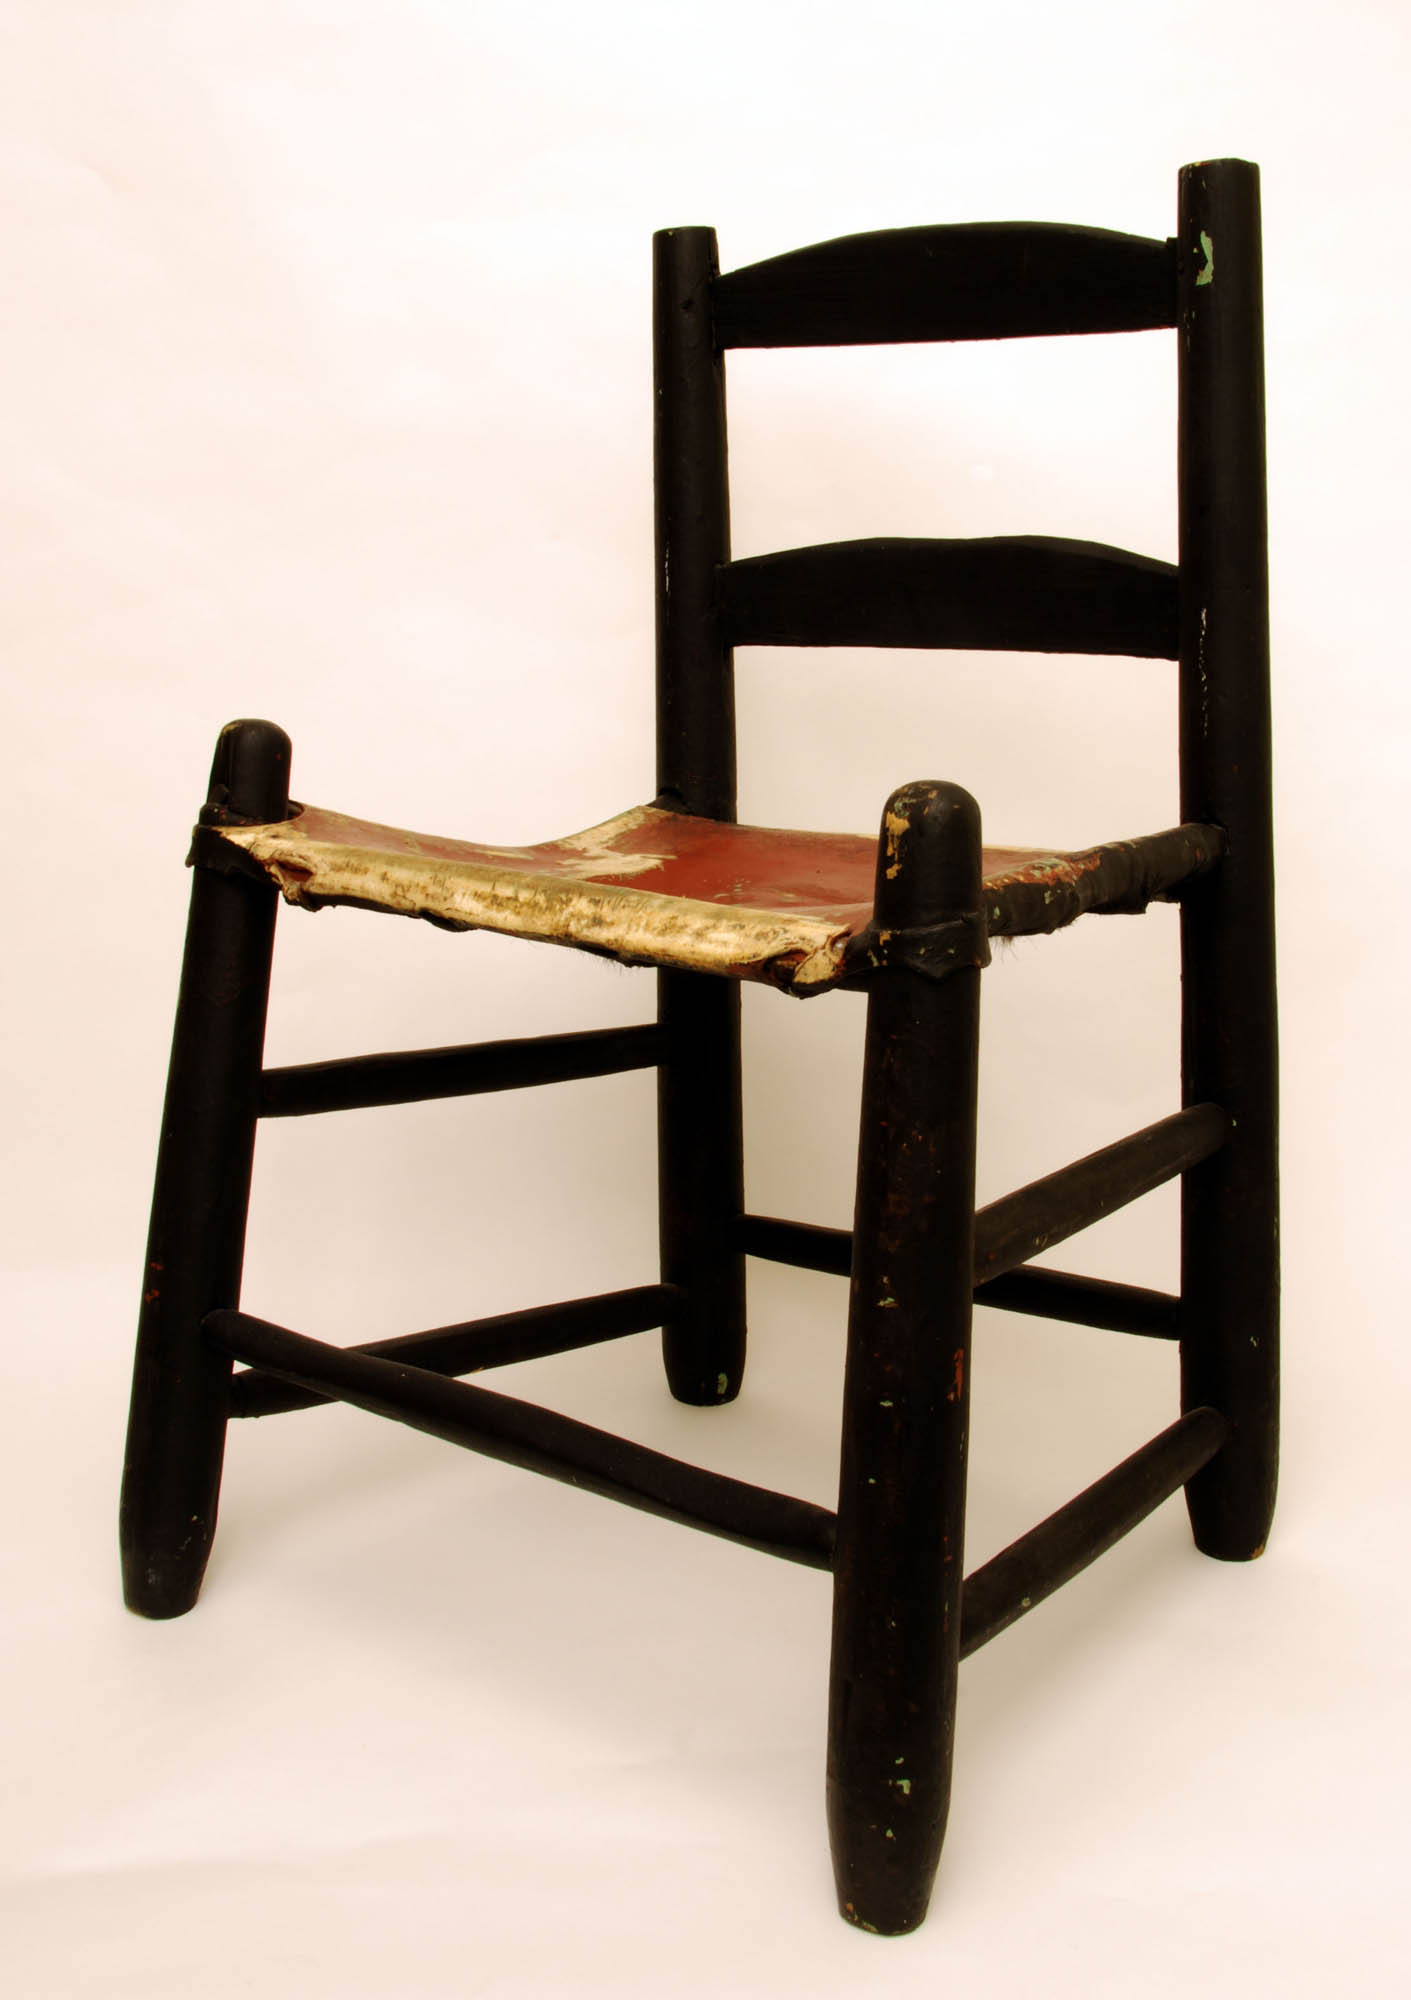 Slave-made chair